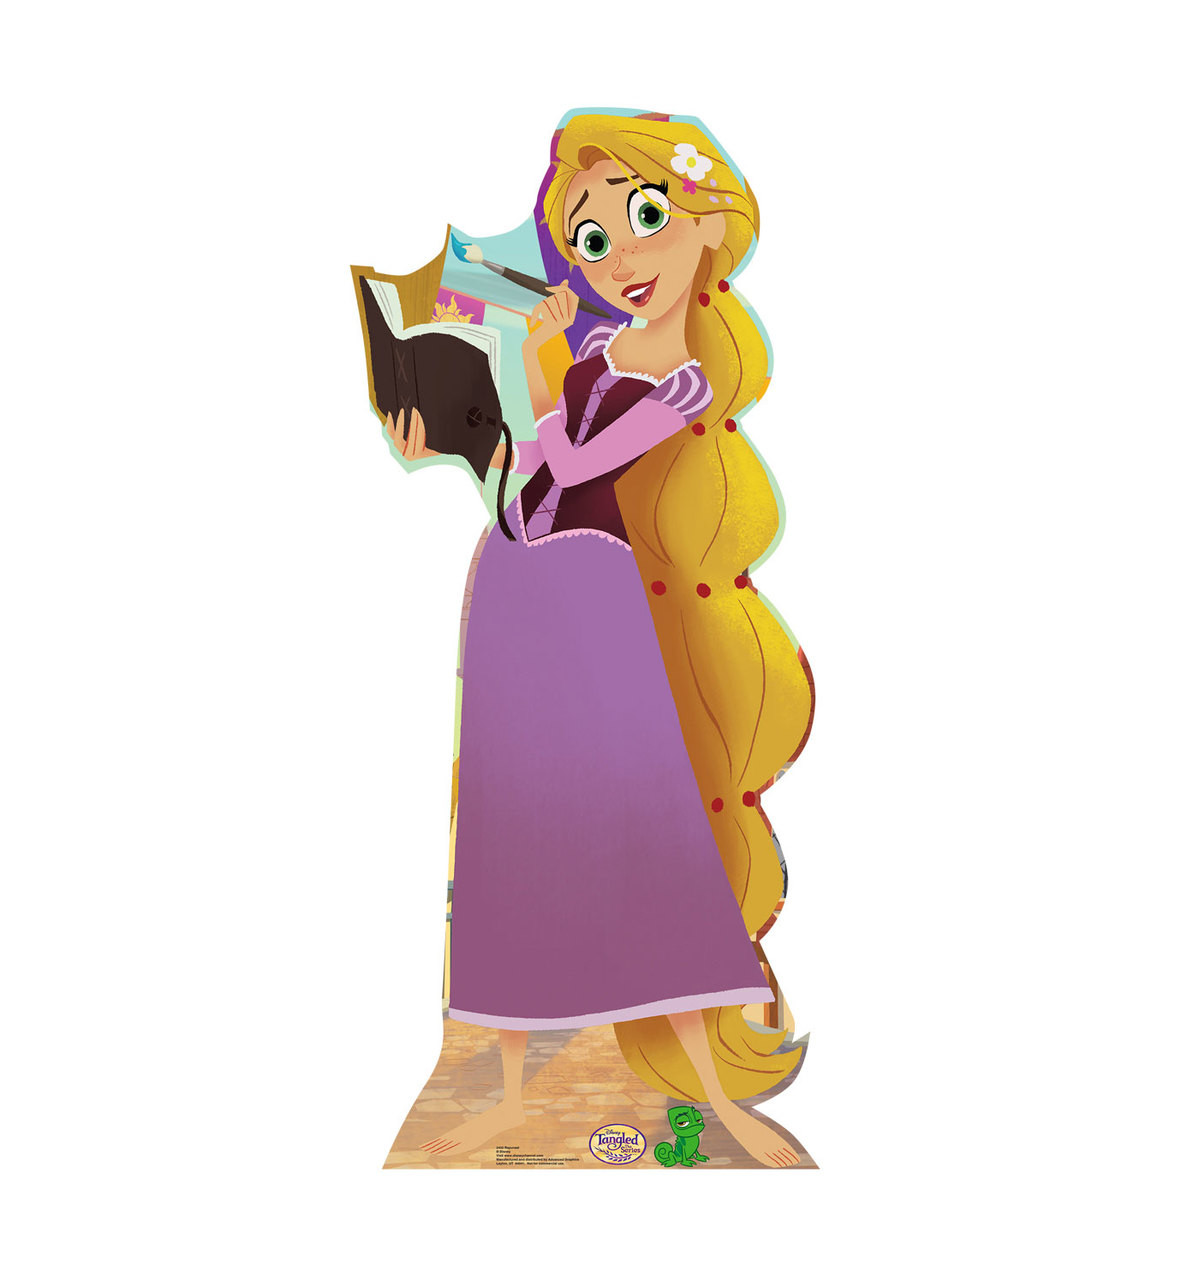 Life-size Rapunzel (Tangled The Series) Cardboard Standup |Cardboard Cutout 3